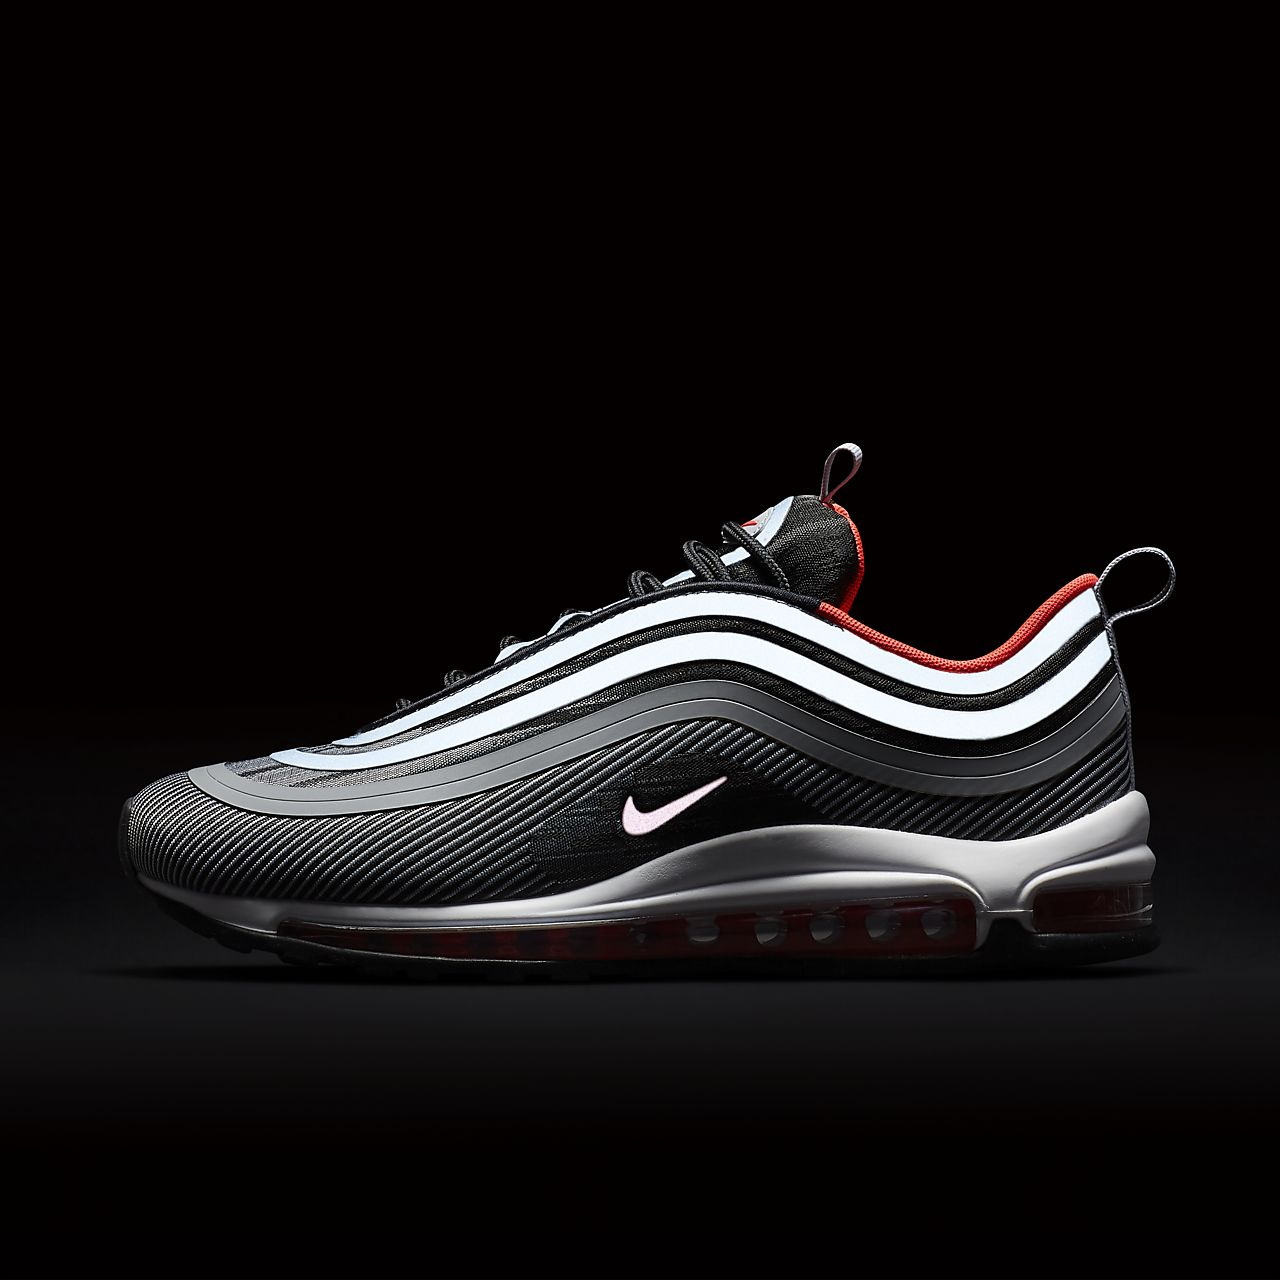 754912a8f4 Nike Air Max 97 Ultra '17 Men's Shoe. Nike.com ID